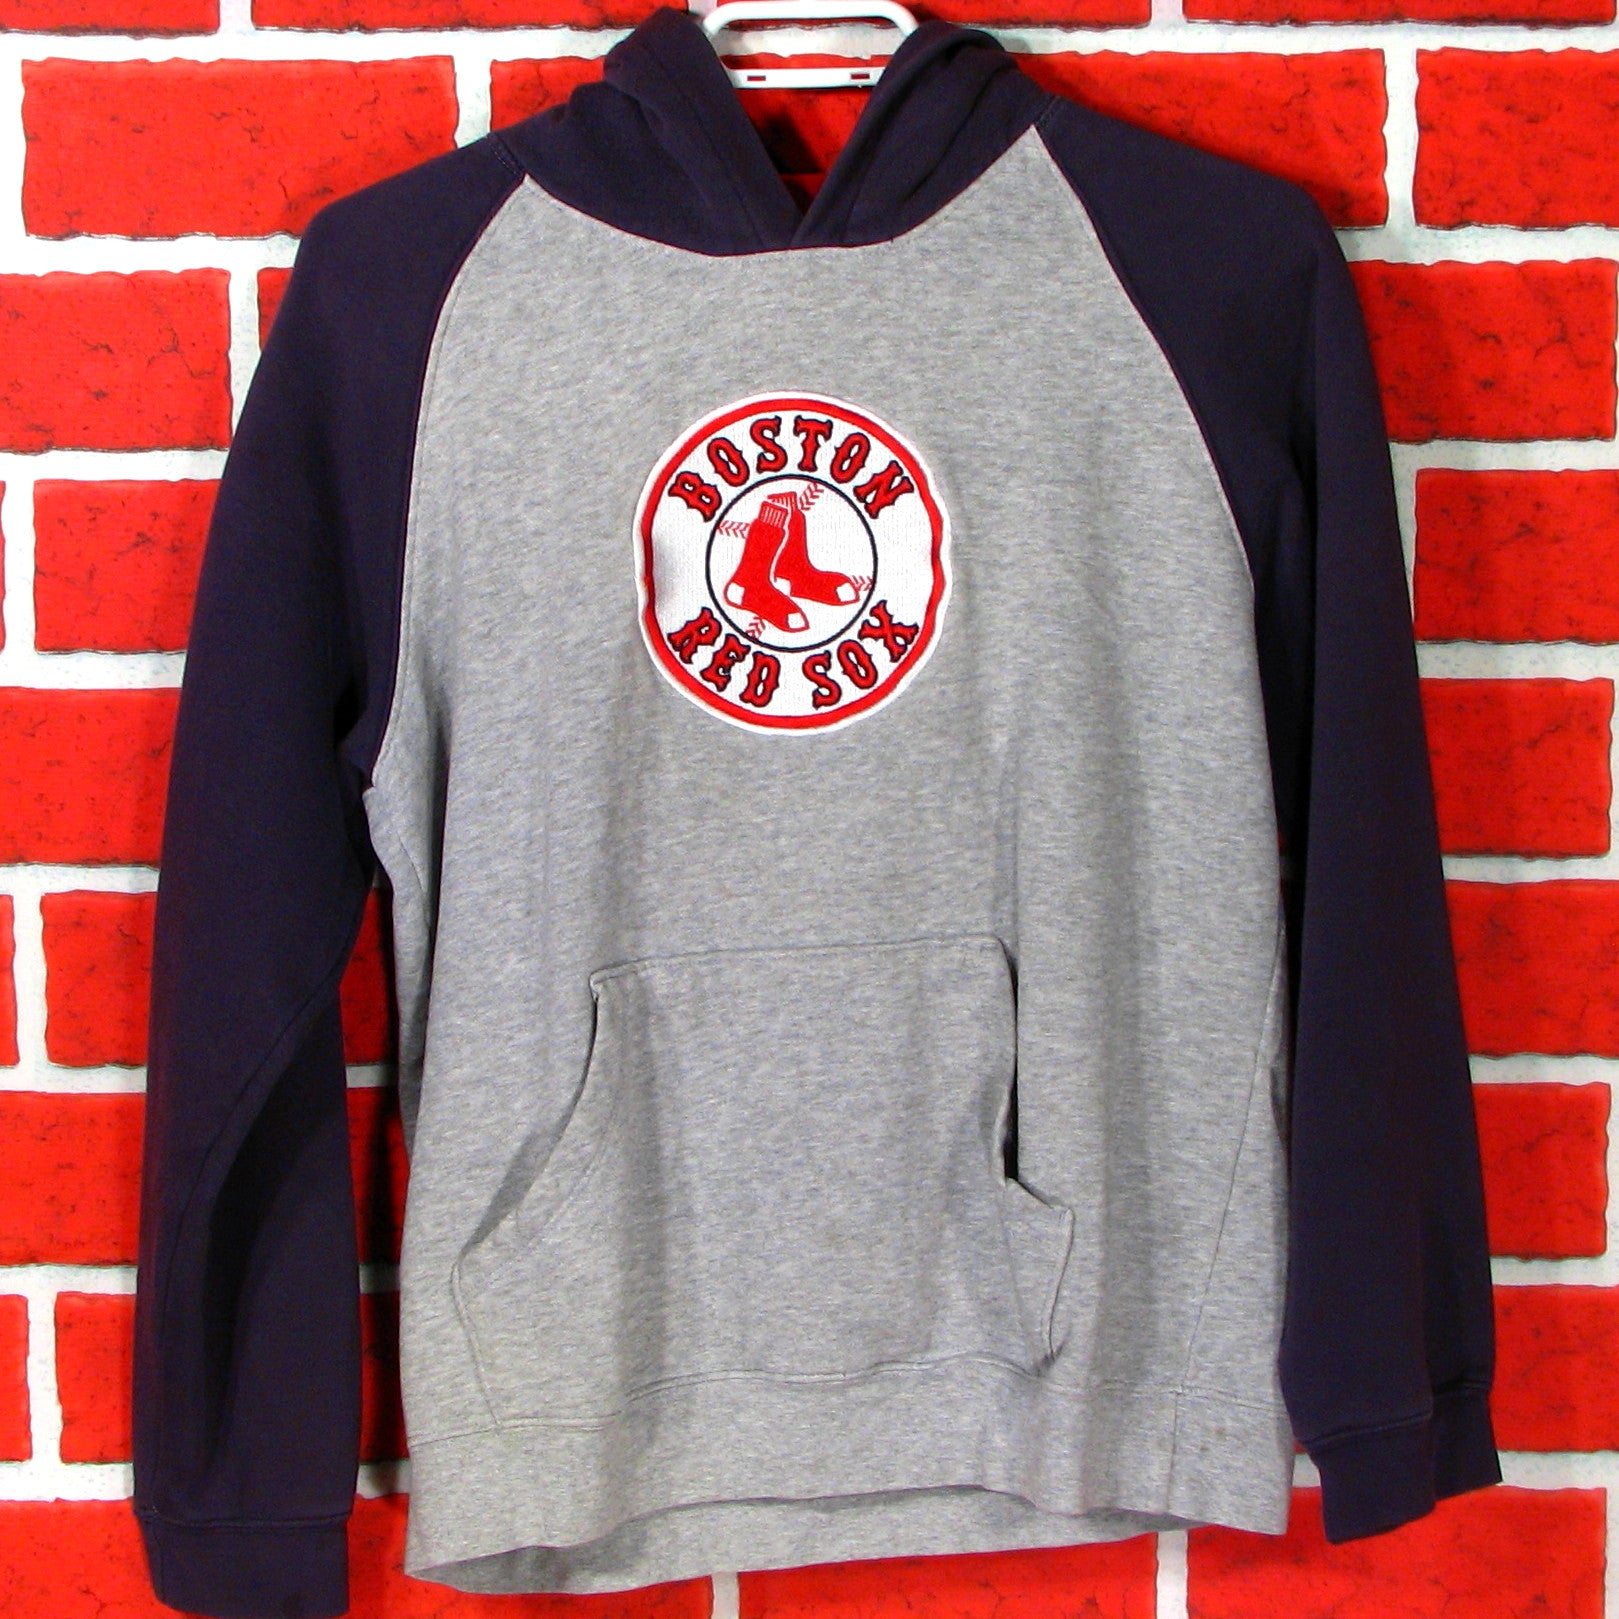 detailing eec44 0f005 Boston Red Sox Hoodie Mens/Youth